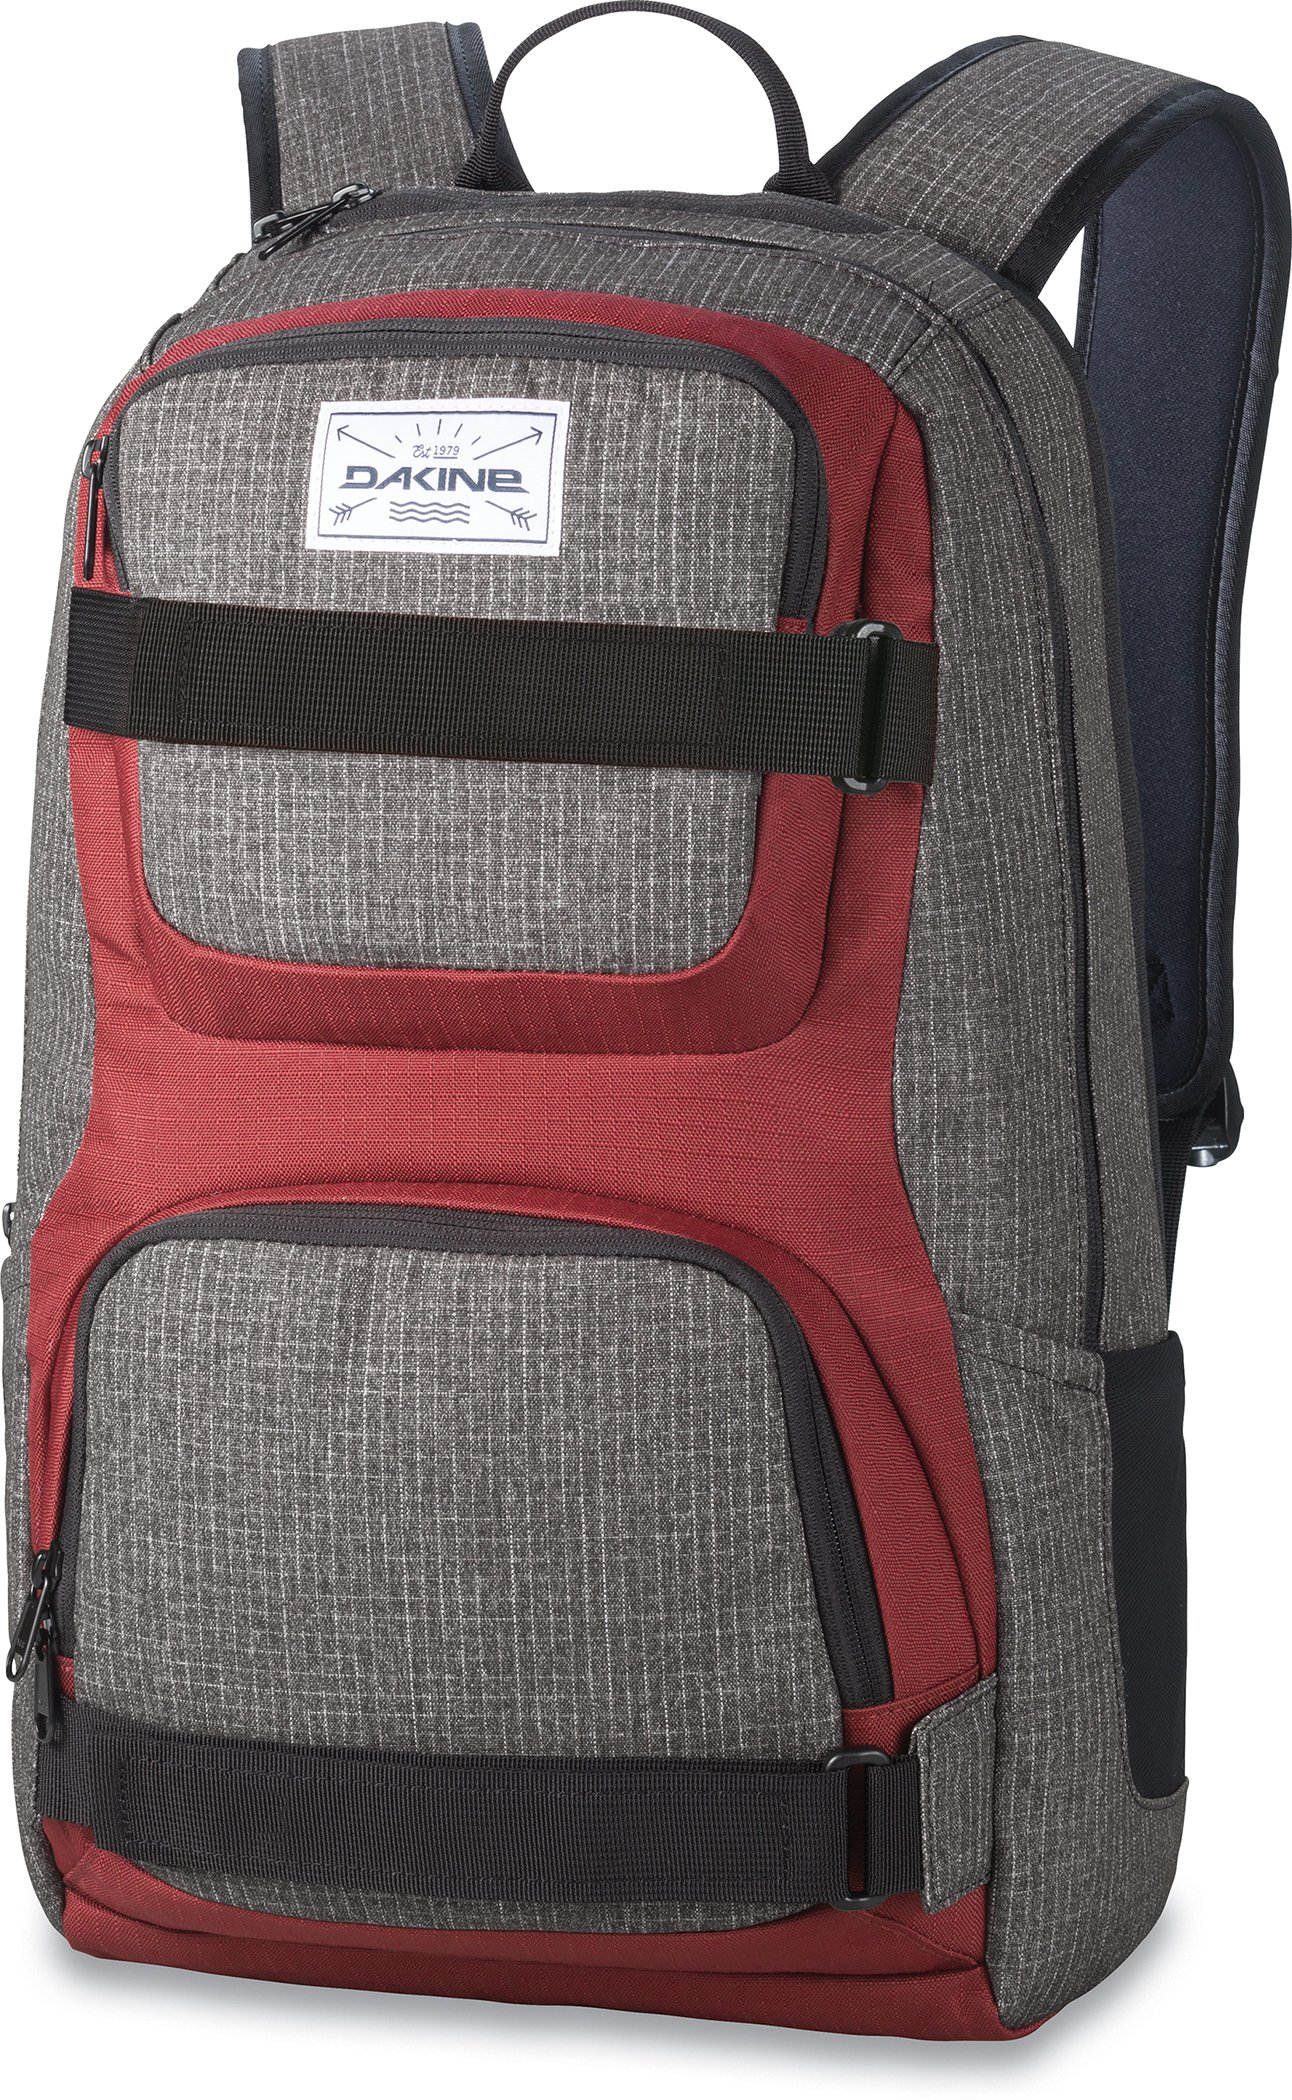 Dakine Duel 26L Backpack - Padded Laptop & iPad Sleeve - Insulated Cooler Pocket - Mesh Side Pockets - 19'' x 12'' x 9'' (Willamette)